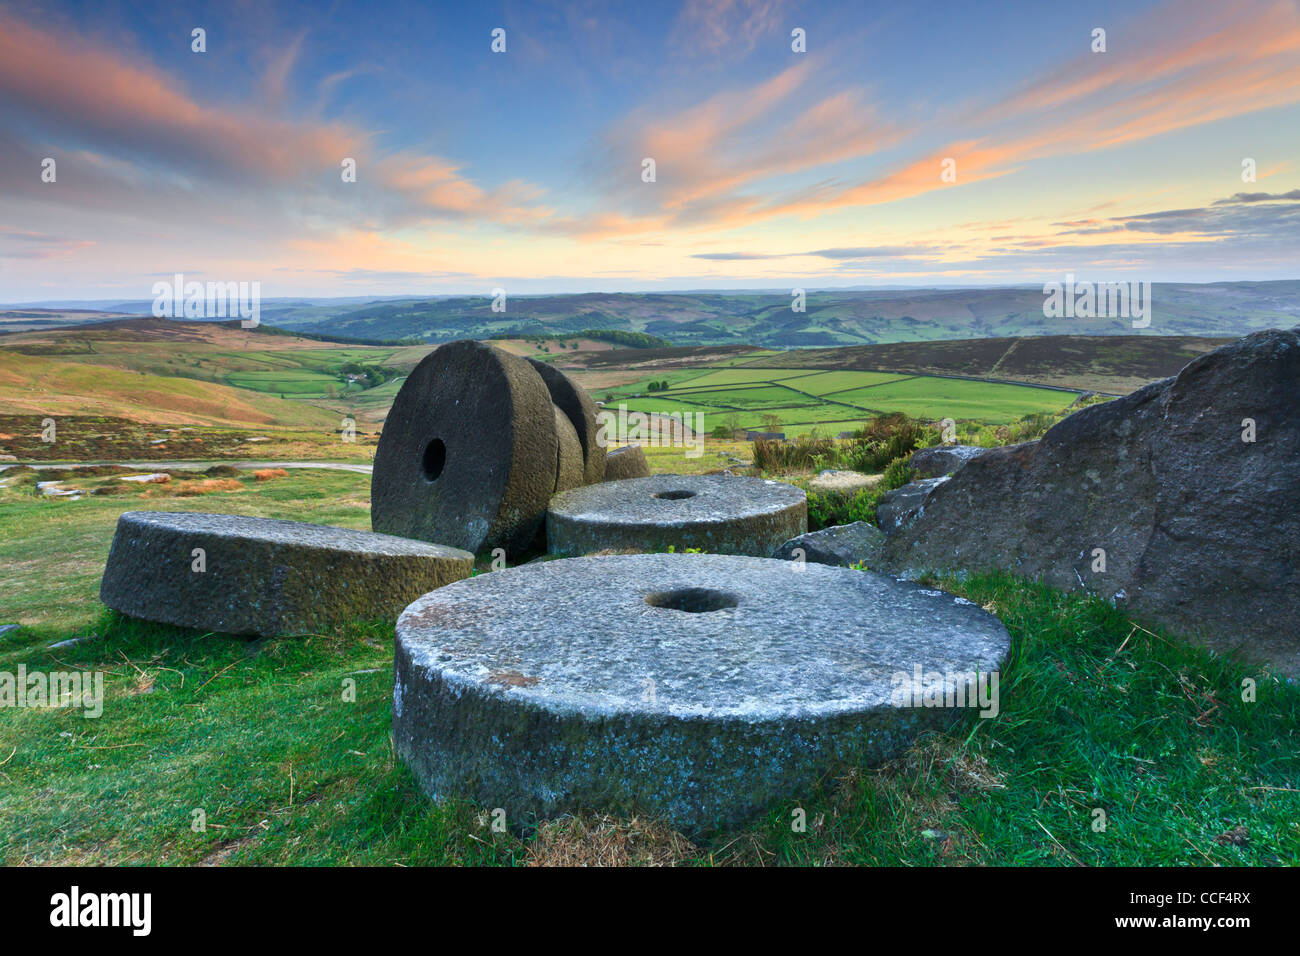 Millstones on Stanage Edge in the Peak District National Park.  Captured at sunset with the Hope Valley in the distance - Stock Image